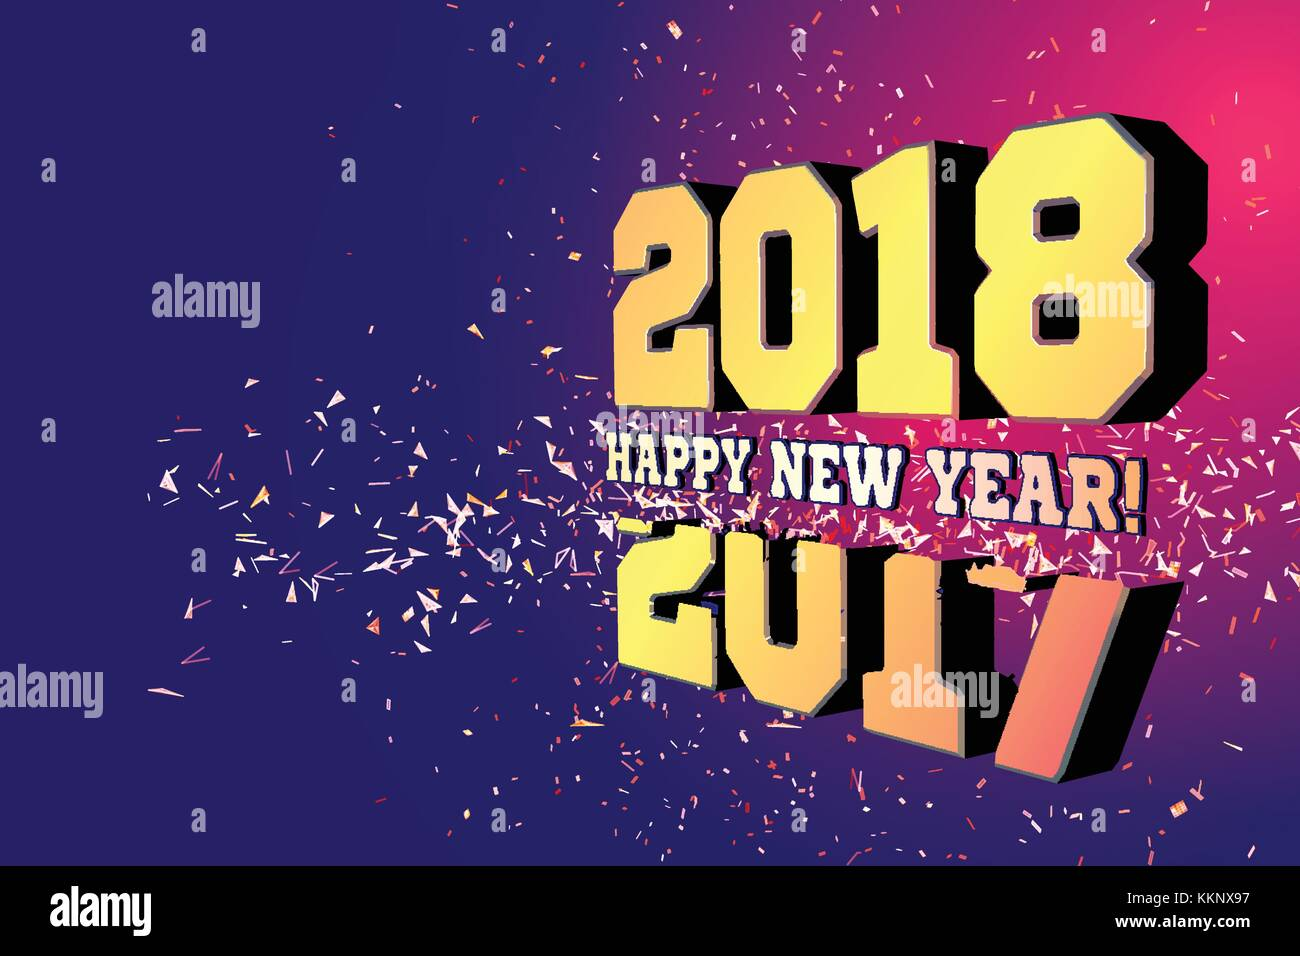 Official congratulations on the New Year 2018 14